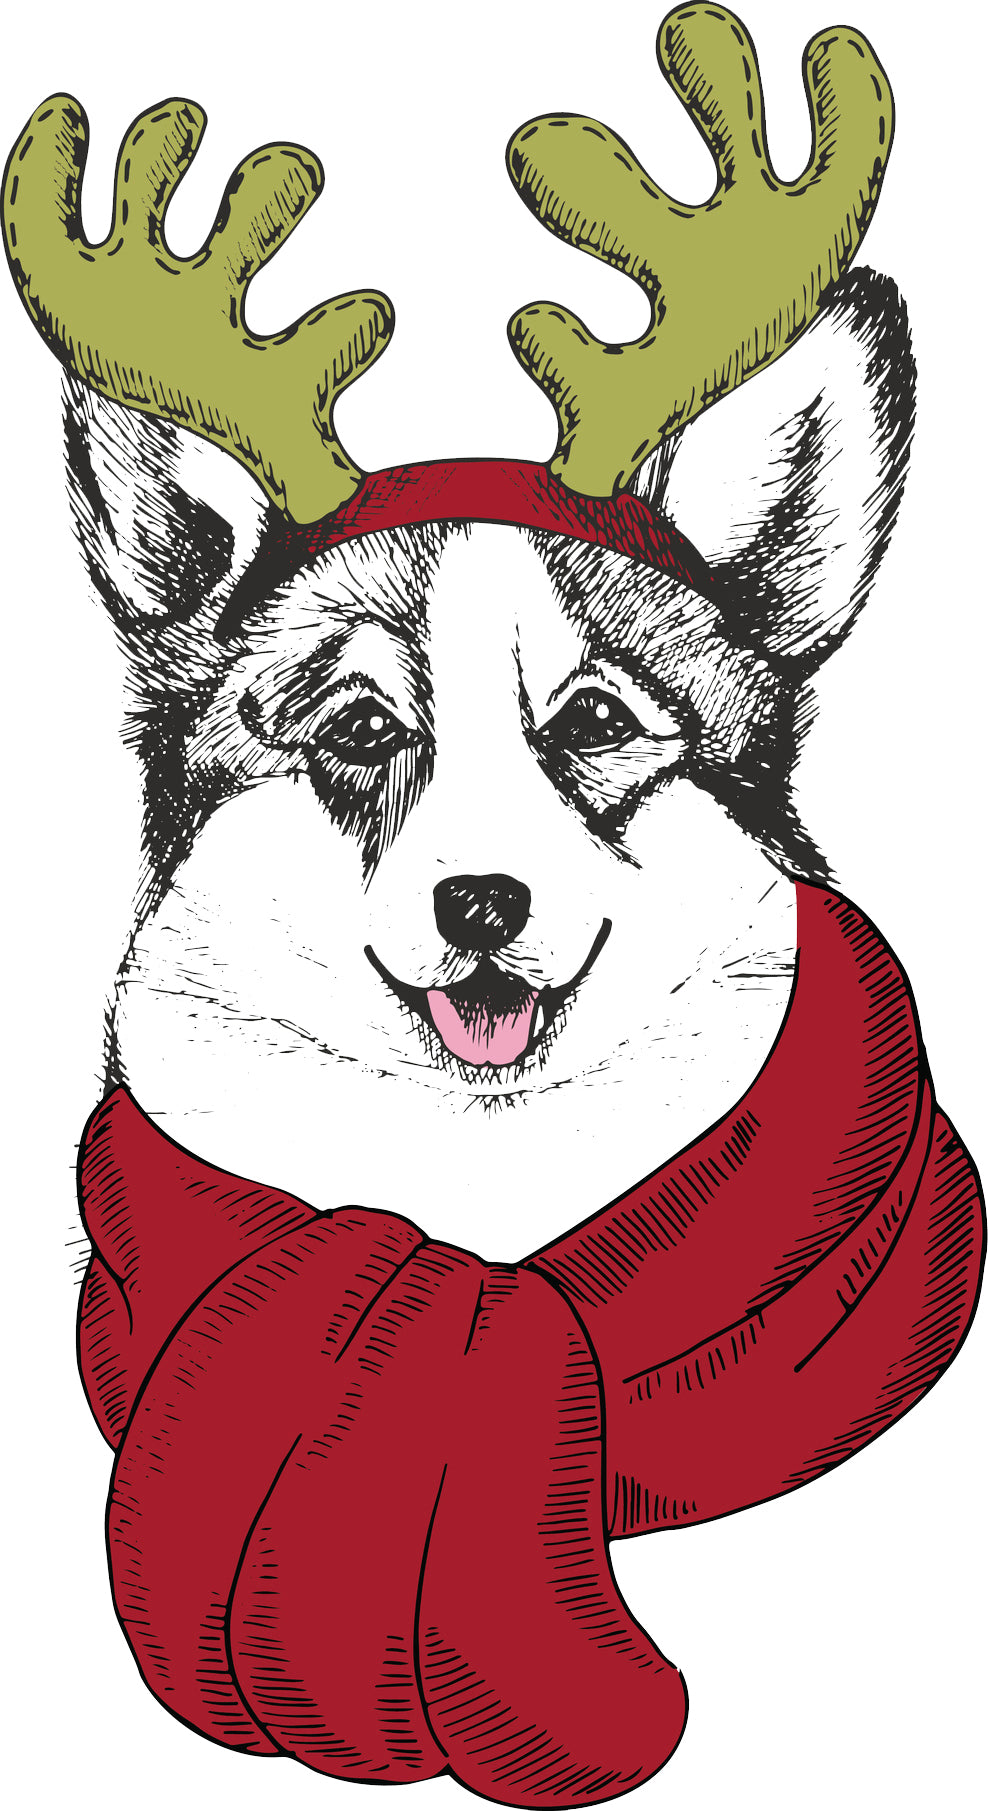 Adorable Merry Christmas Holiday Puppy Dog in Reindeer Costume - Corgi Vinyl Decal Sticker